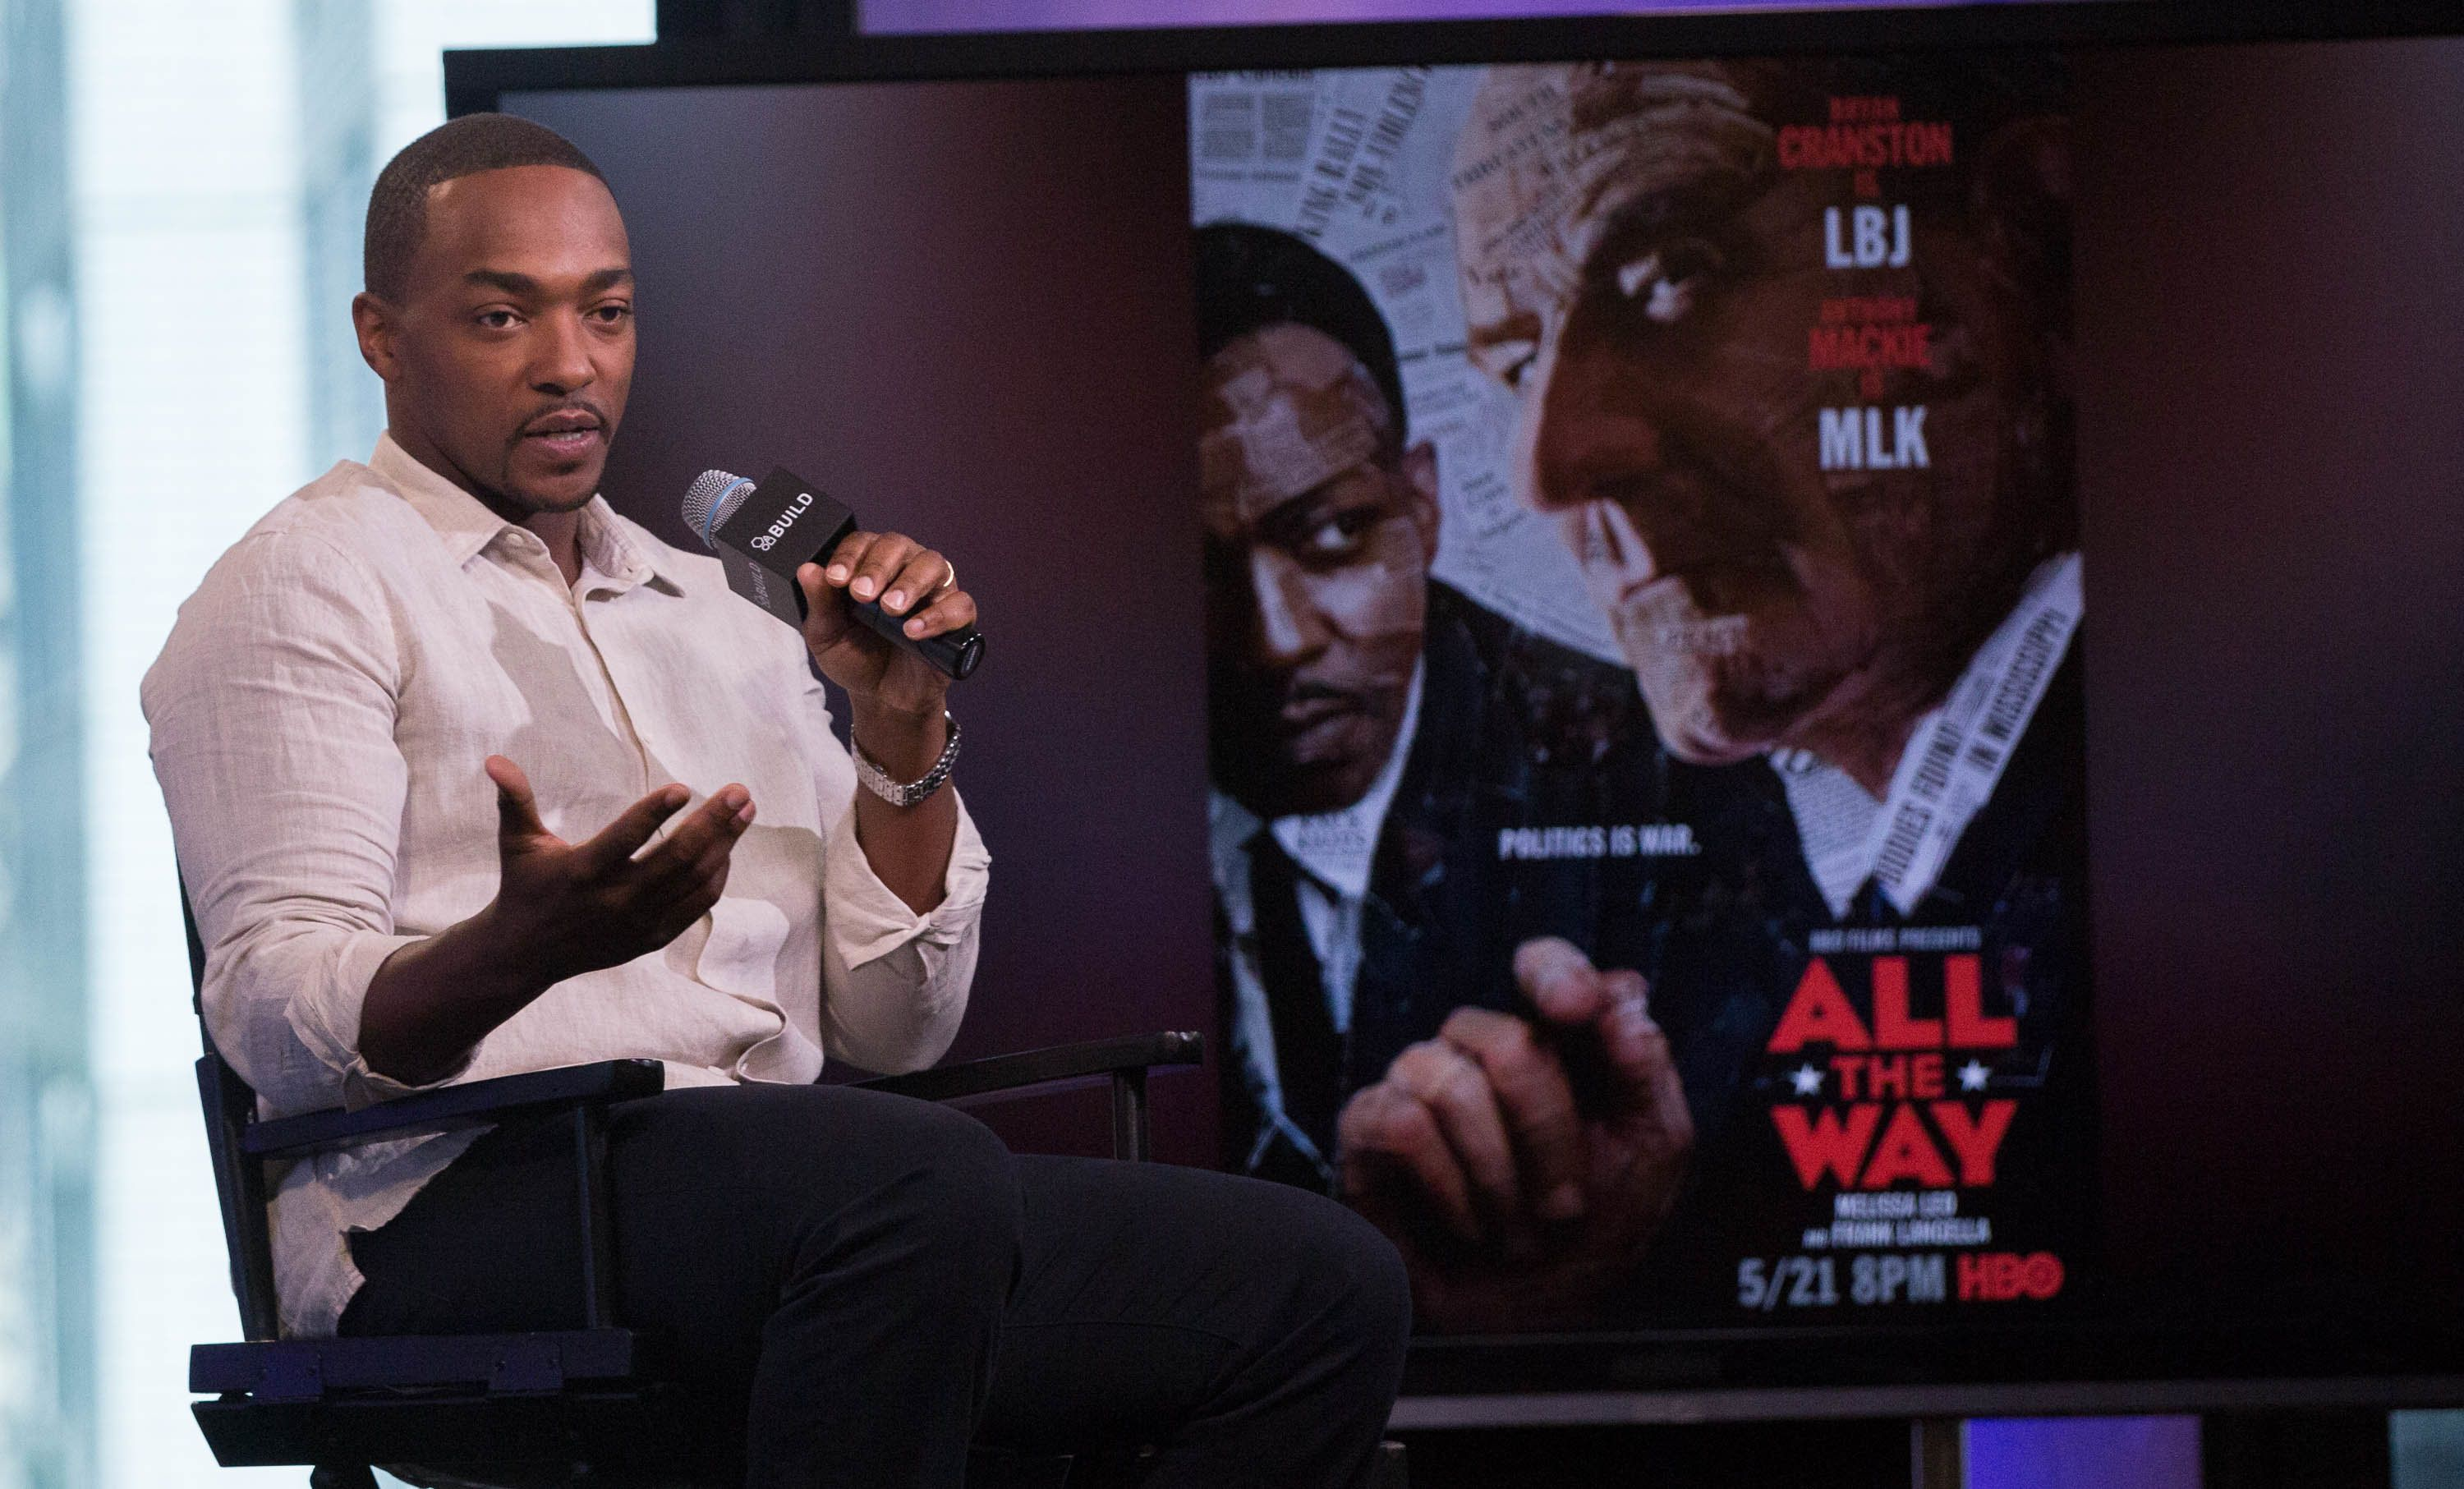 NEW YORK, NY - MAY 18:  Actor Anthony Mackie discusses 'All The Way' At AOL Build at AOL on May 18, 2016 in New York City.  (Photo by Adela Loconte/WireImage)